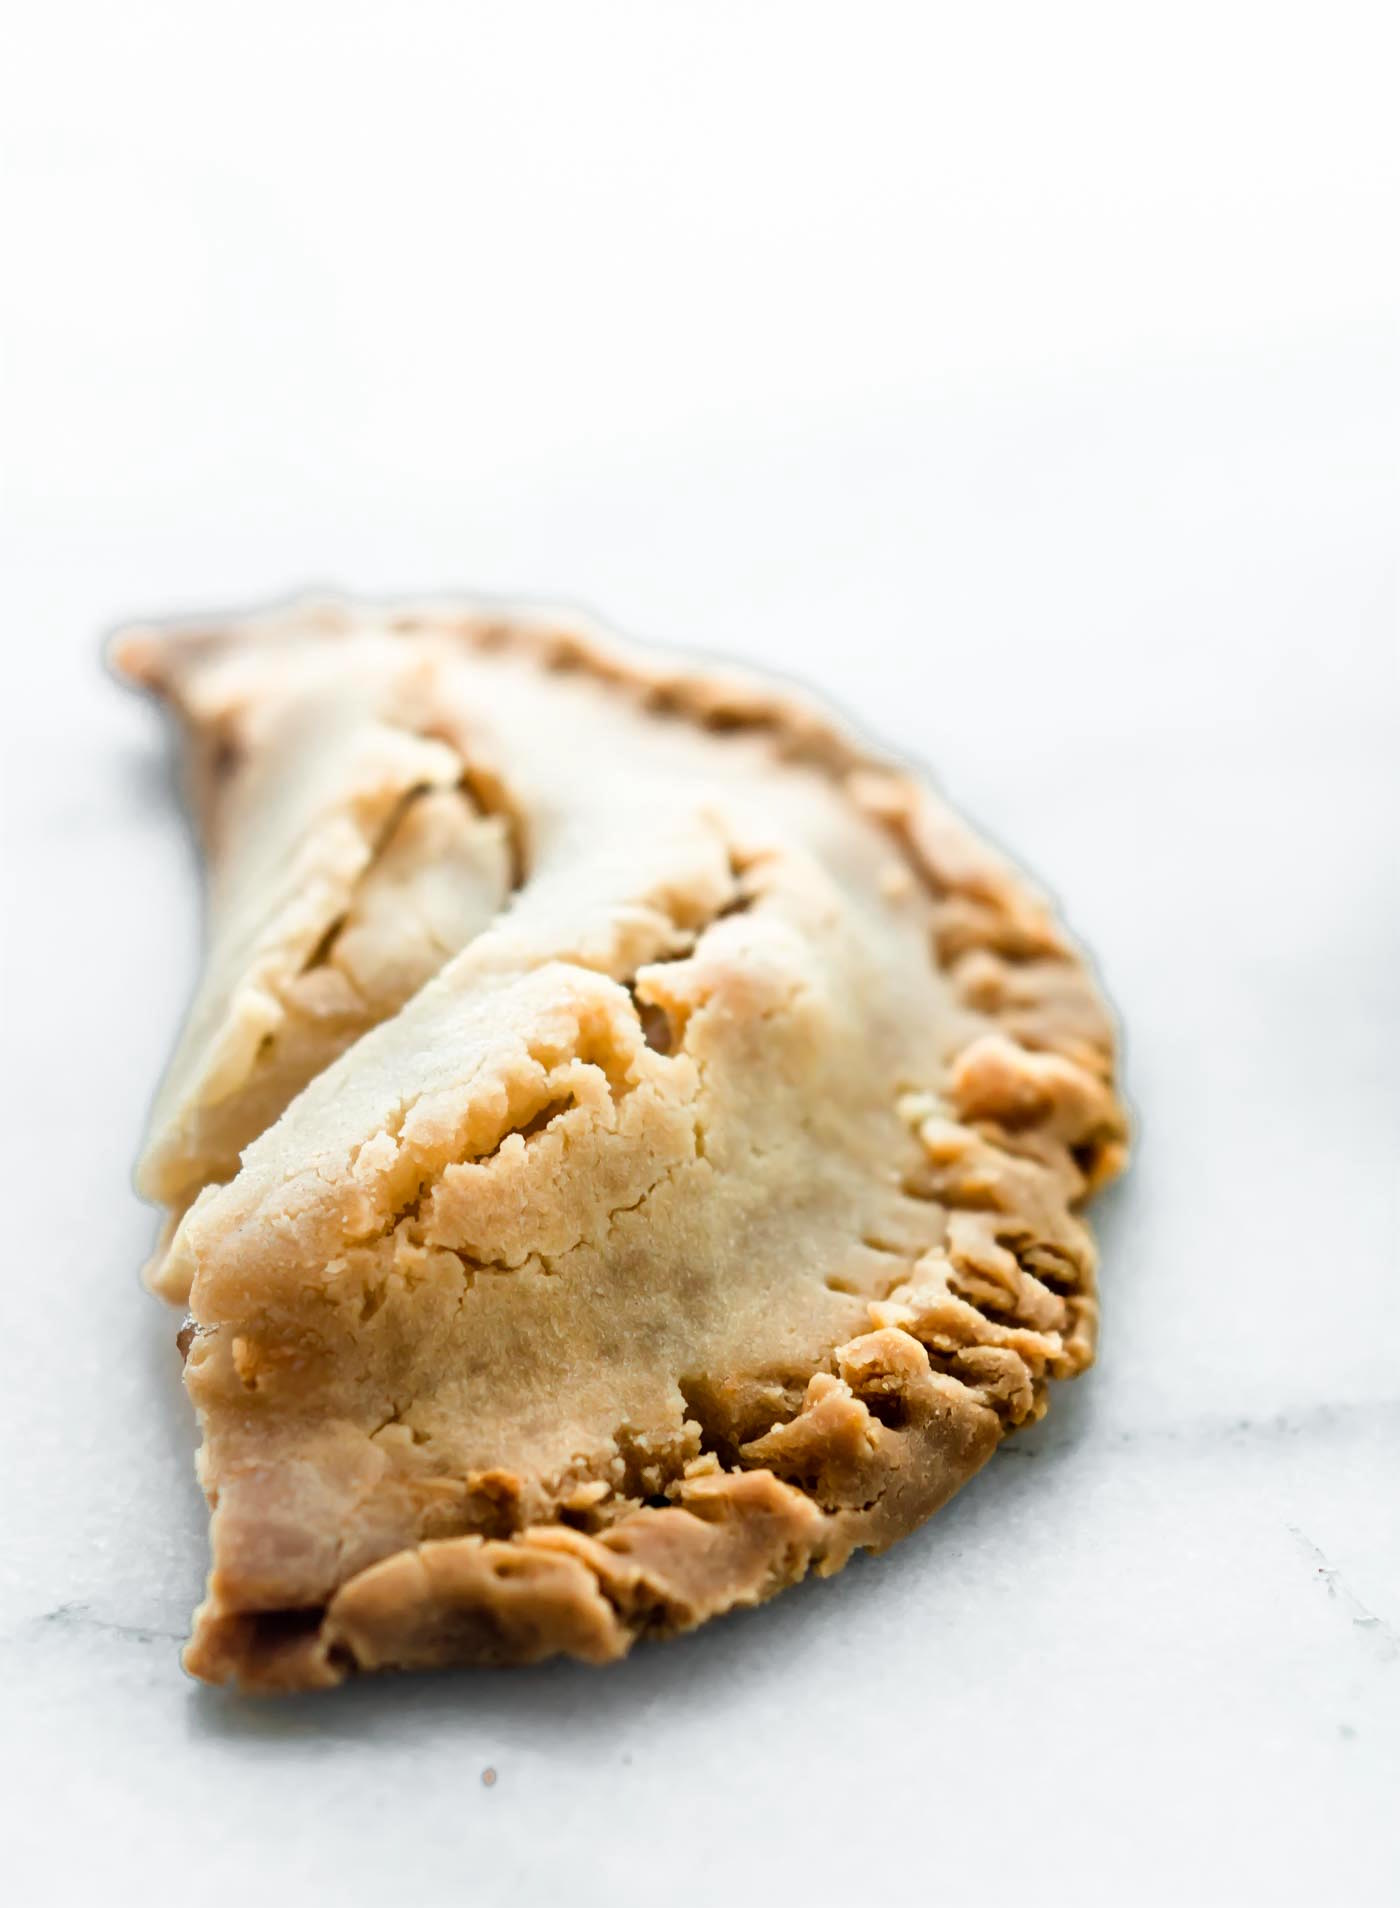 Gluten Free Fruit Hand pies made with just 3 ingredients! An easy fruit hand pies recipe that customizable, dairy free friendly, and QUICK! You will love how simple this recipe! Perfect for brunch, dessert, snacking and all!